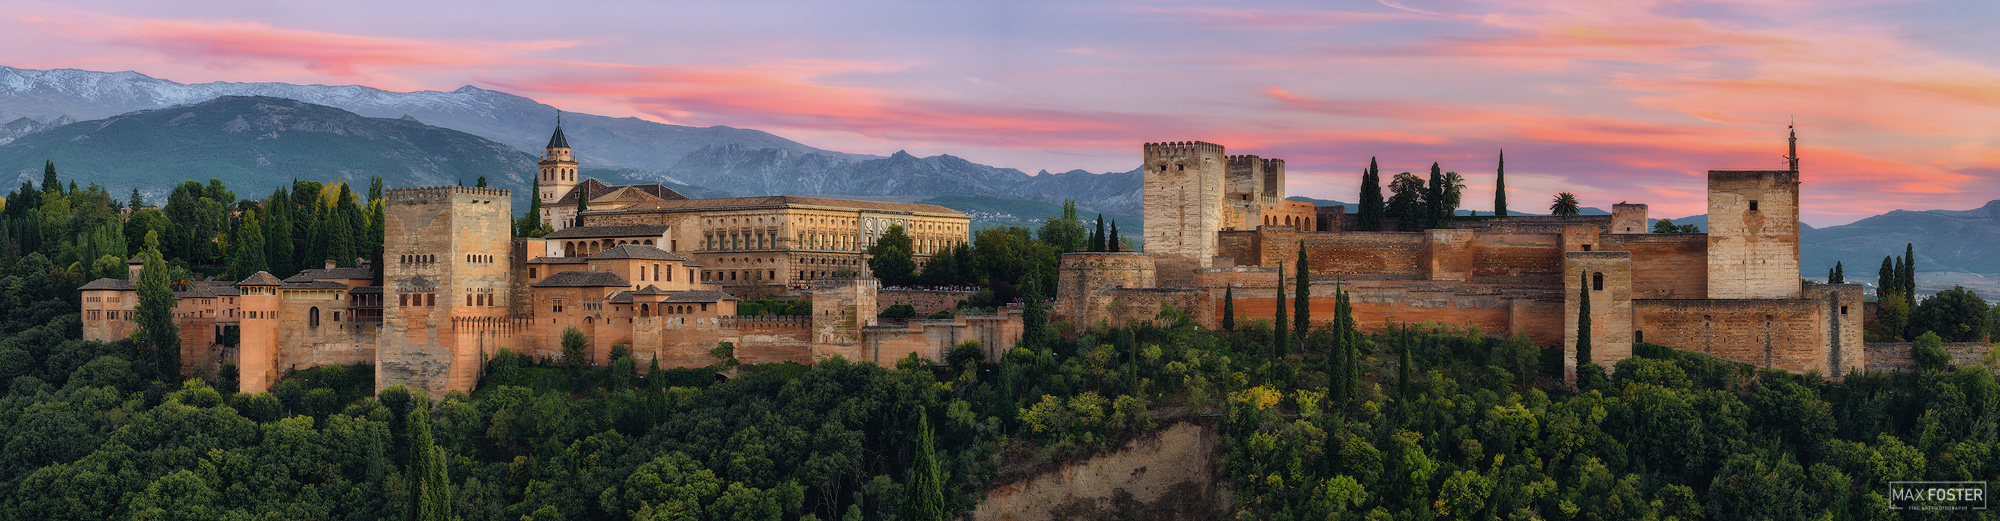 The Alhambra, Granada, Spain, Alhambra Sunset, Andalusia, Palace, Fortress, photo